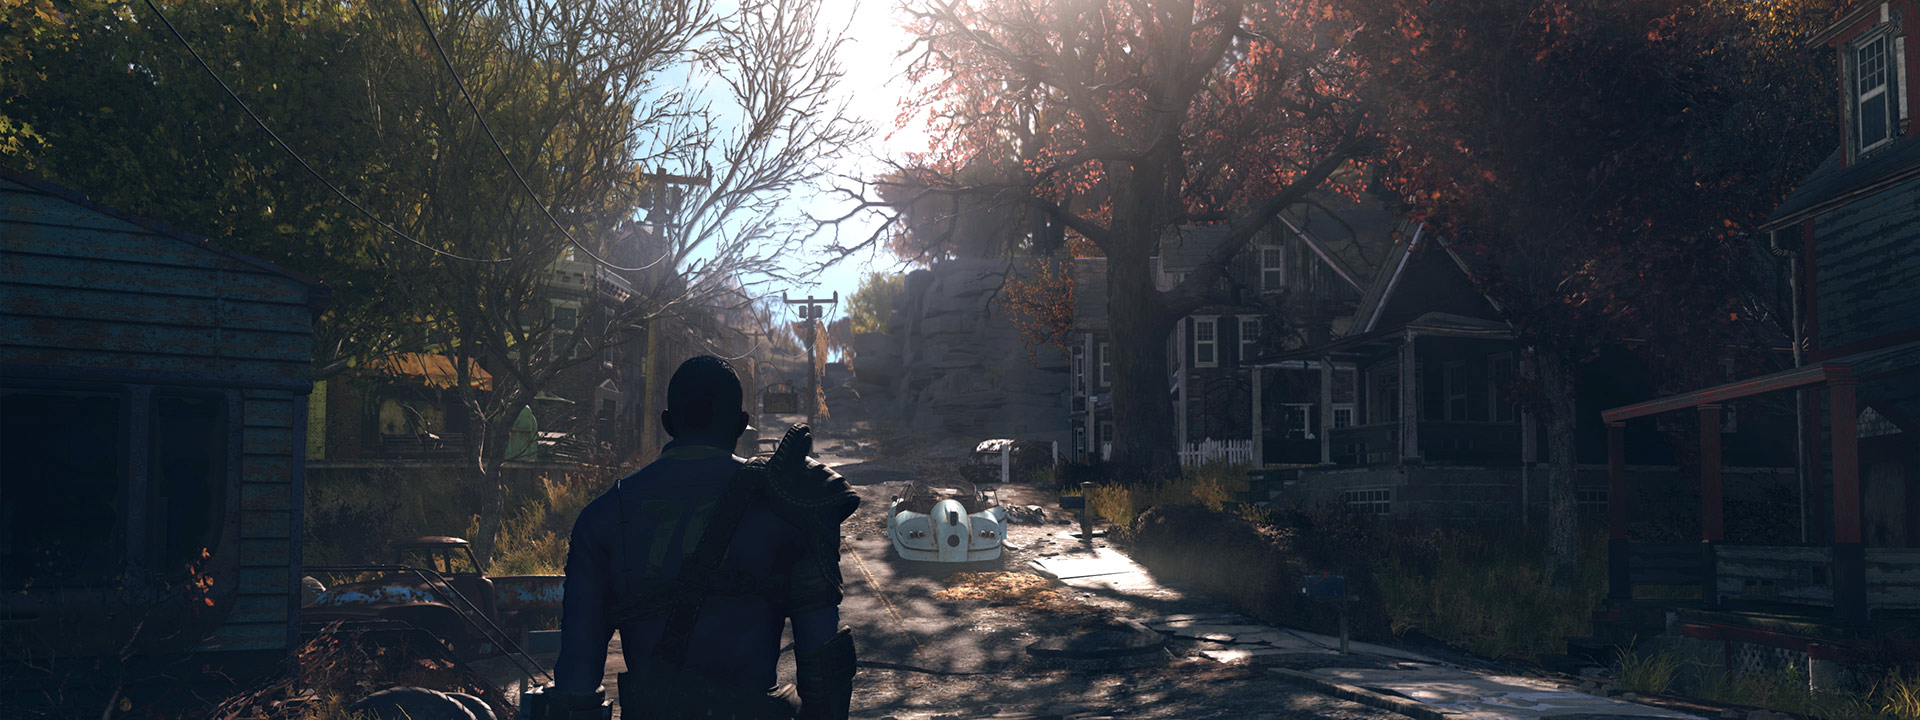 A character walks on a road through a deserted town